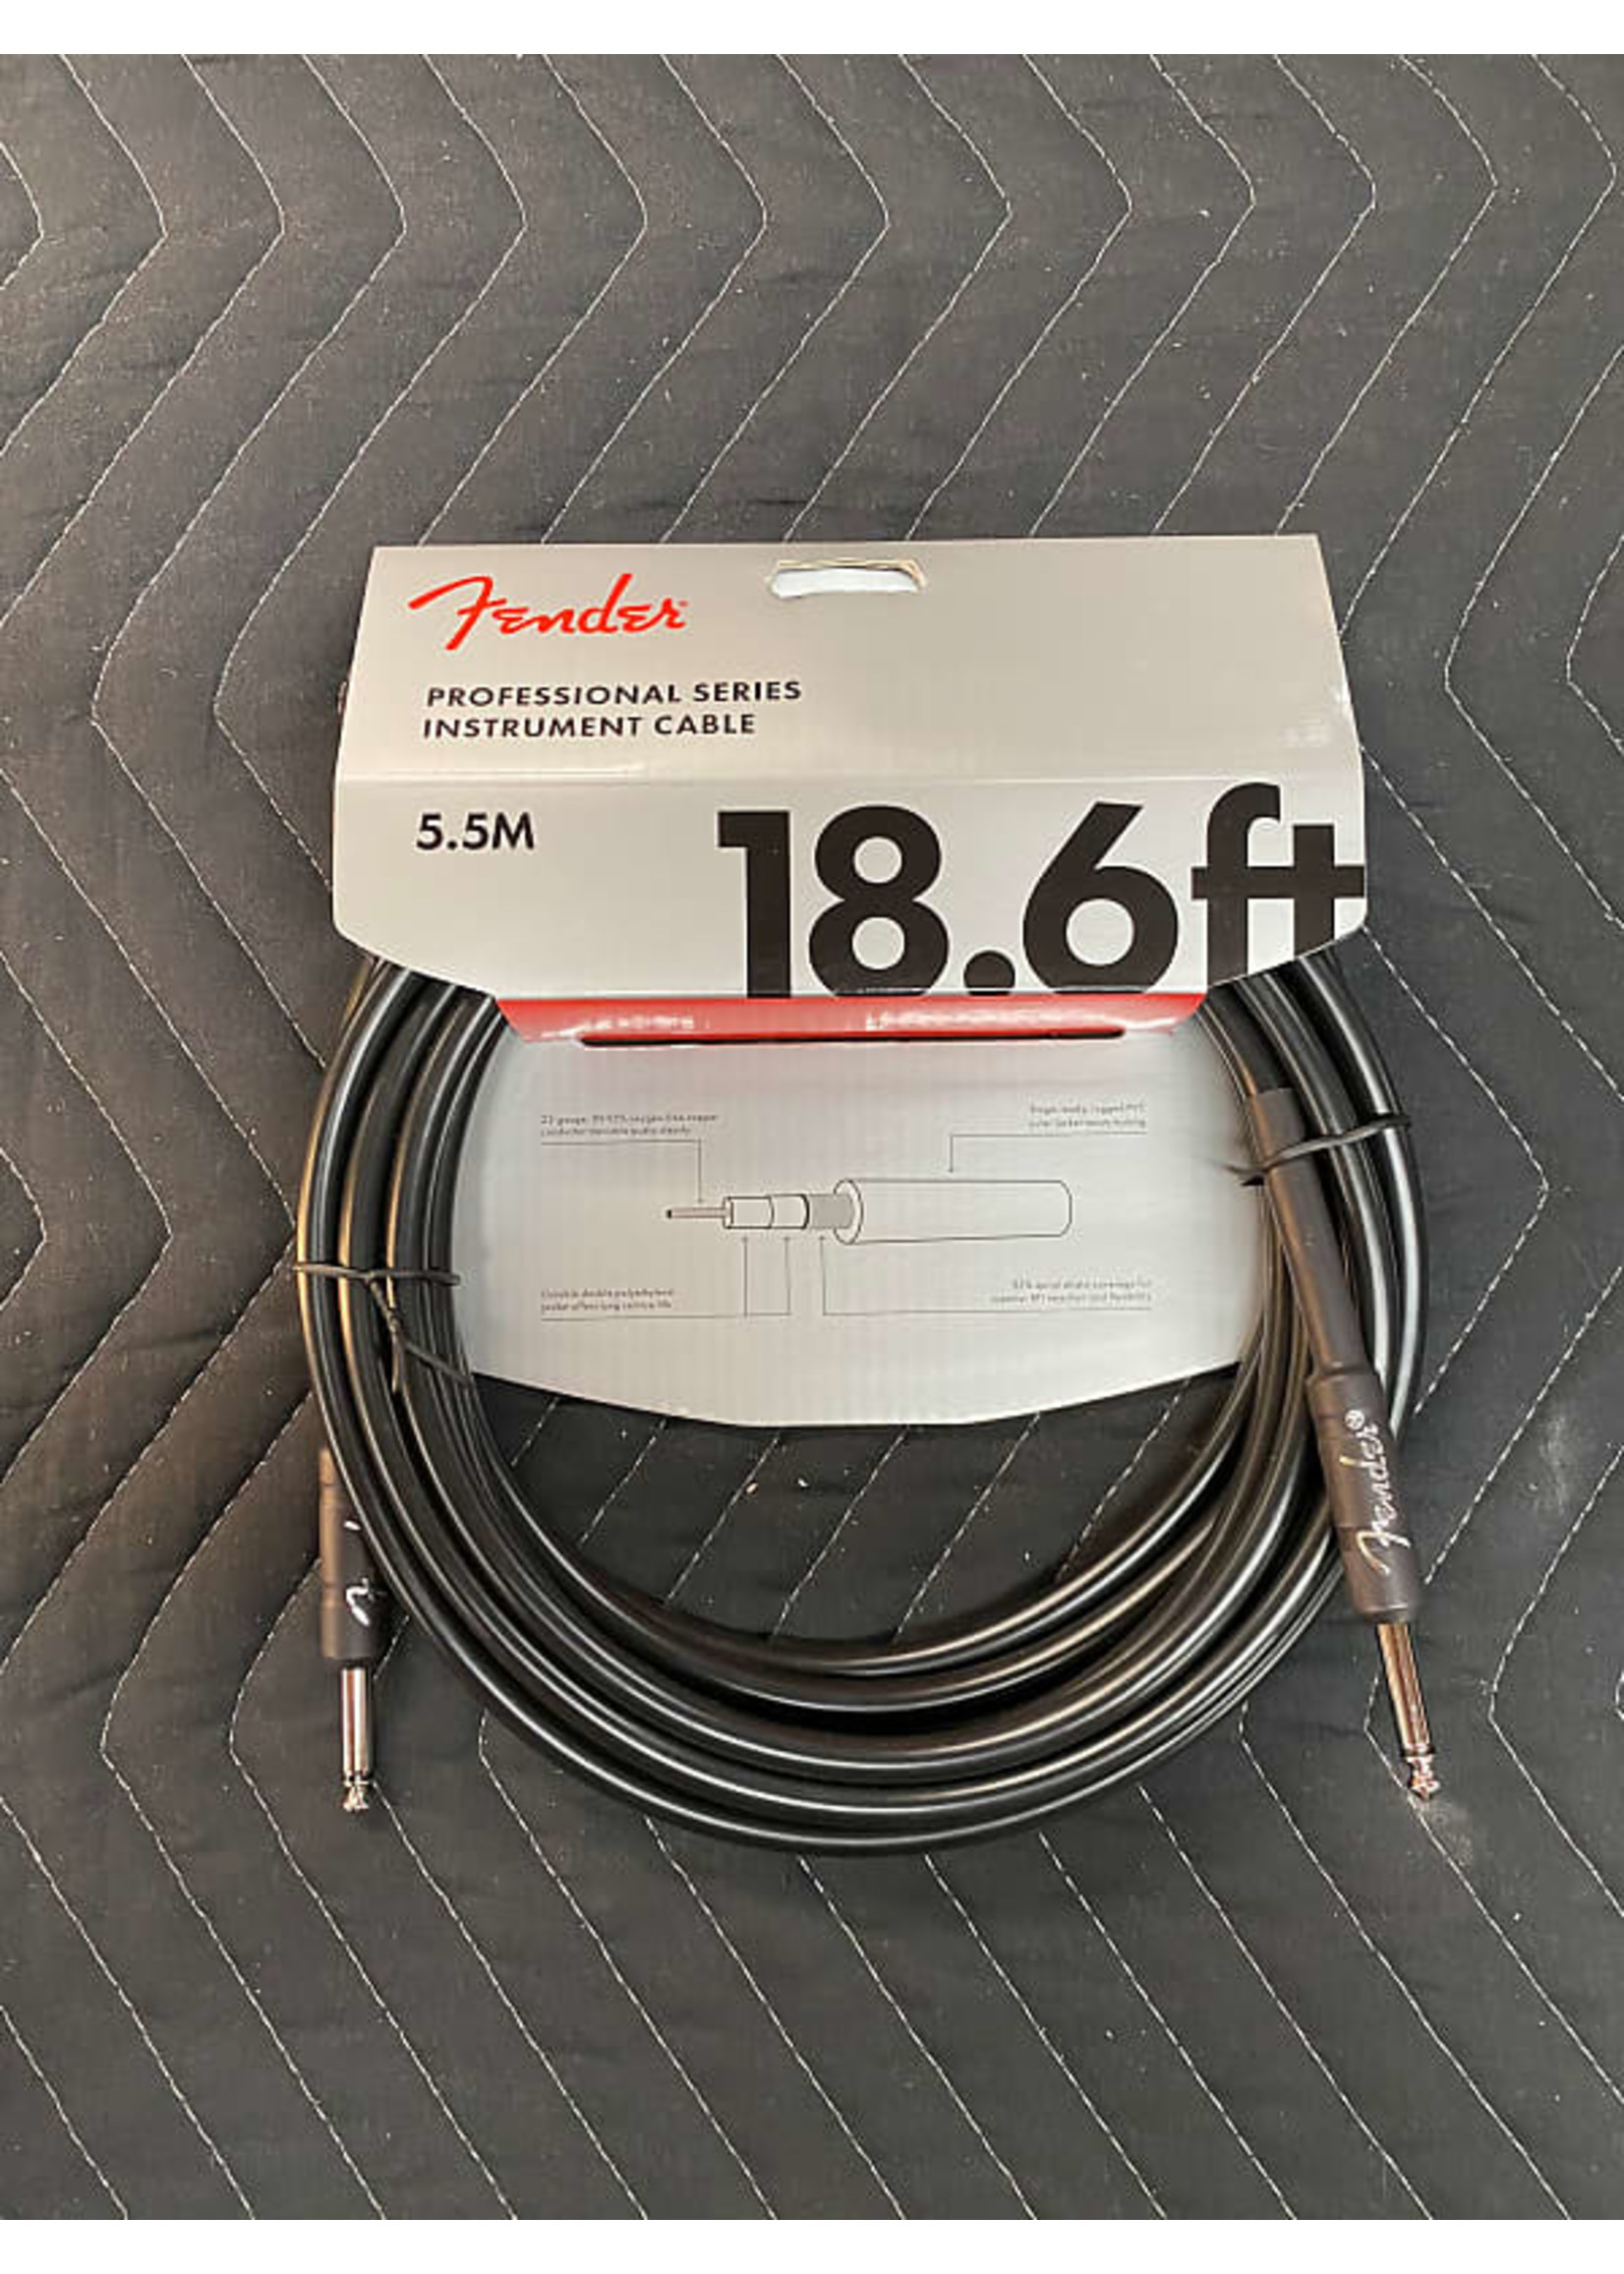 Fender Fender Professional Series Instrument Cable, Straight/Straight, 18.6', Black